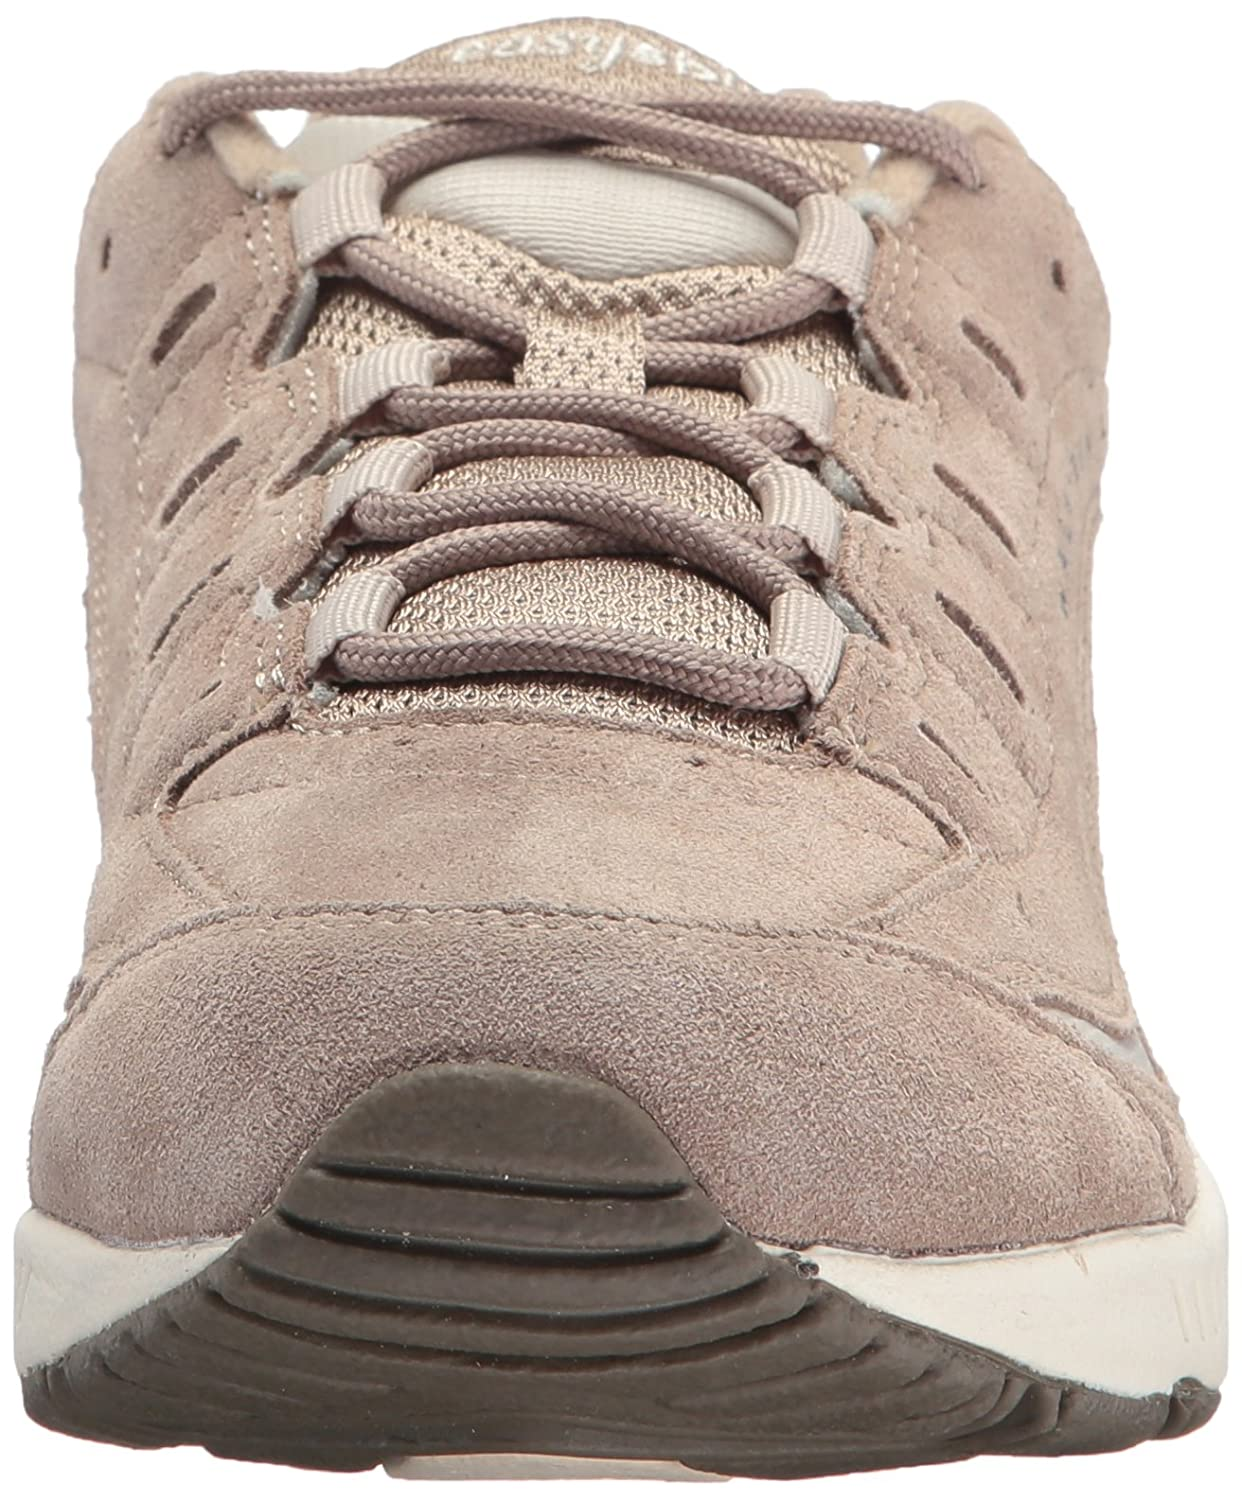 Easy Spirit Women's Romy Walking Shoe B071Y4QBHL 9 E US|Medium Taupe Multi Suede